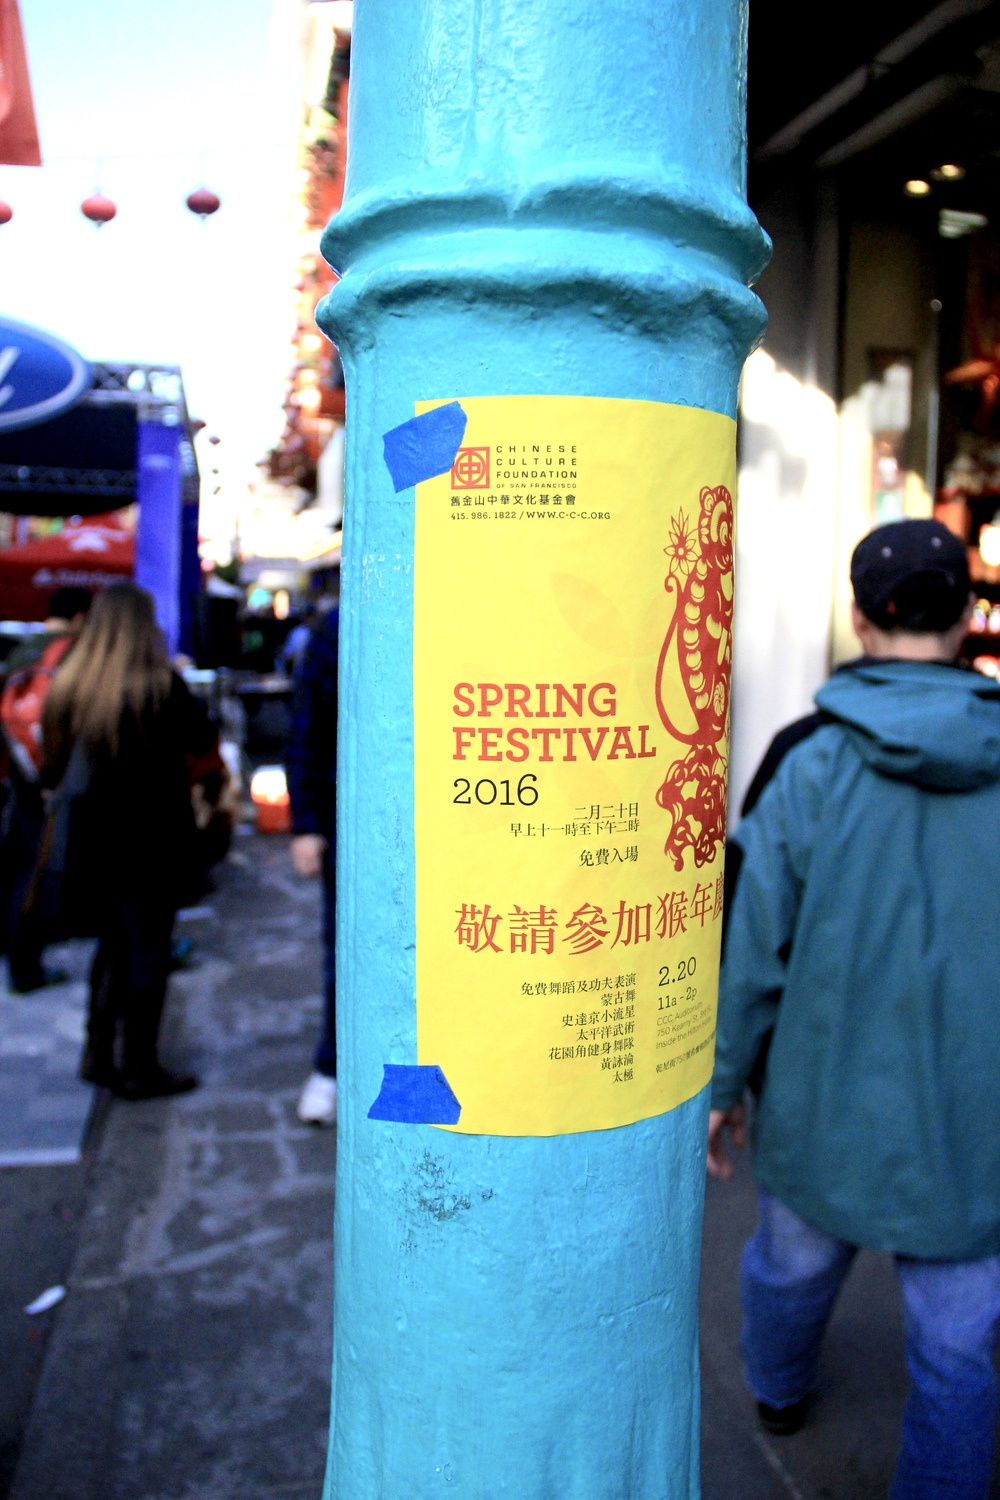 Chinatown's Spring Festival takes place in February each year